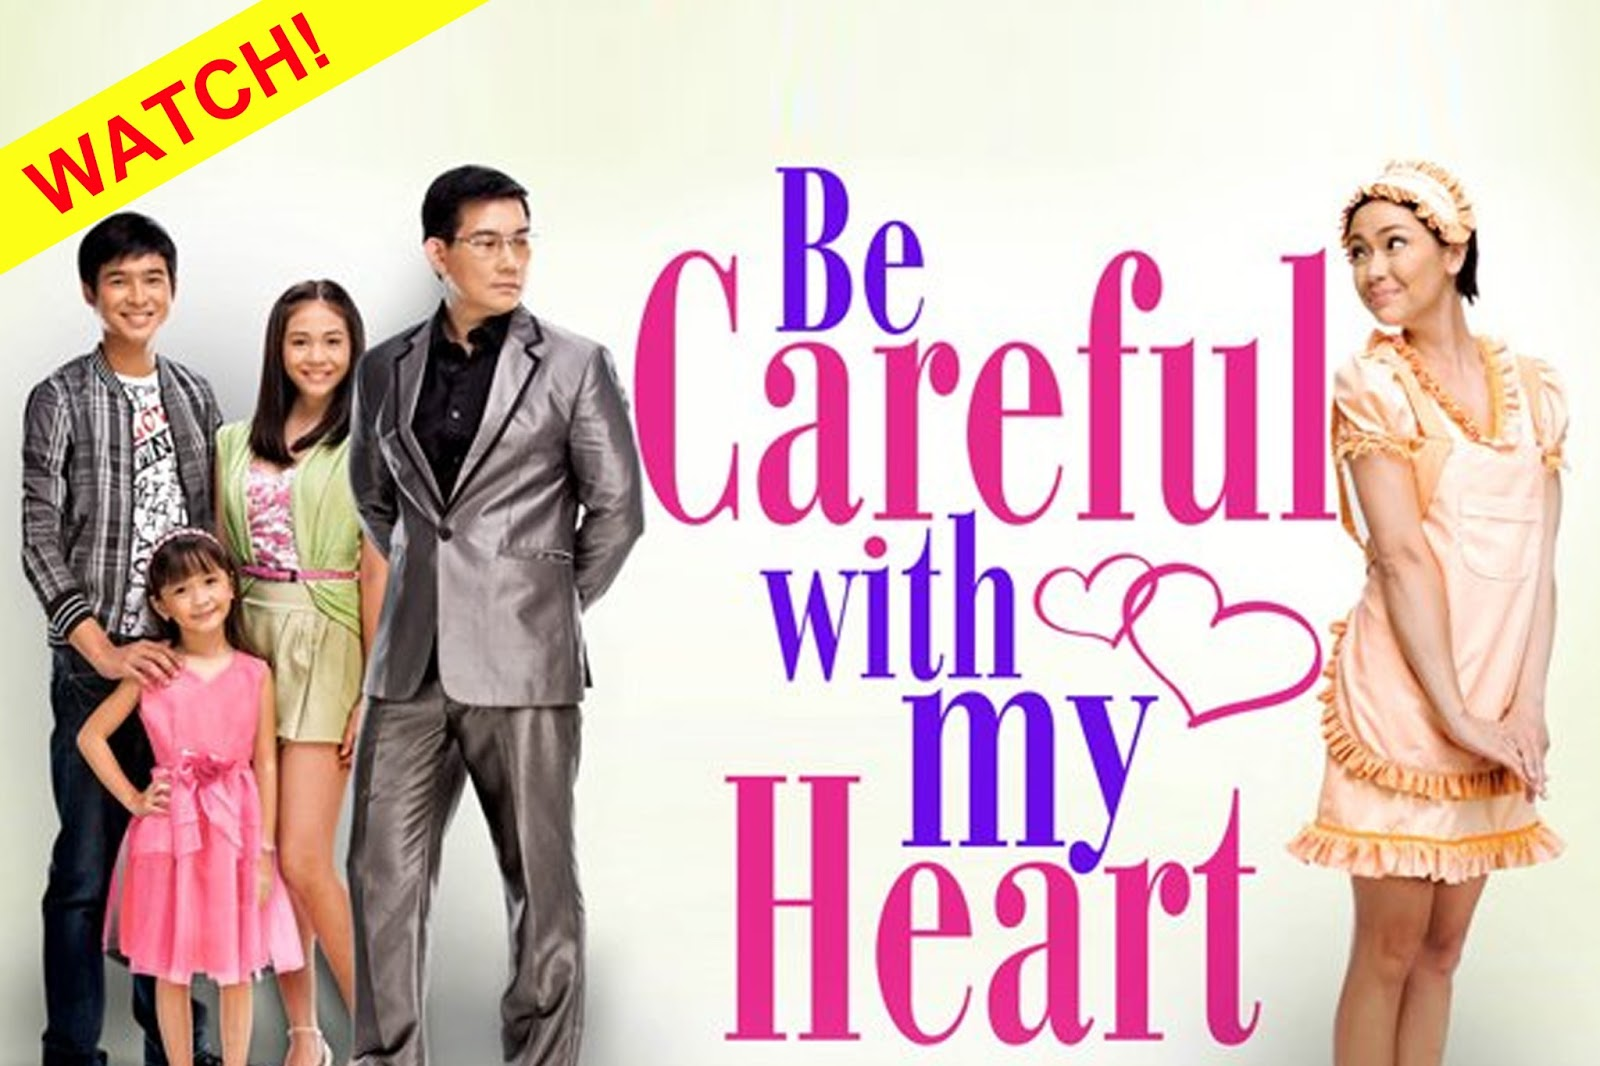 Be Careful With My Heart is a daytime teleserye which premiered on ABS